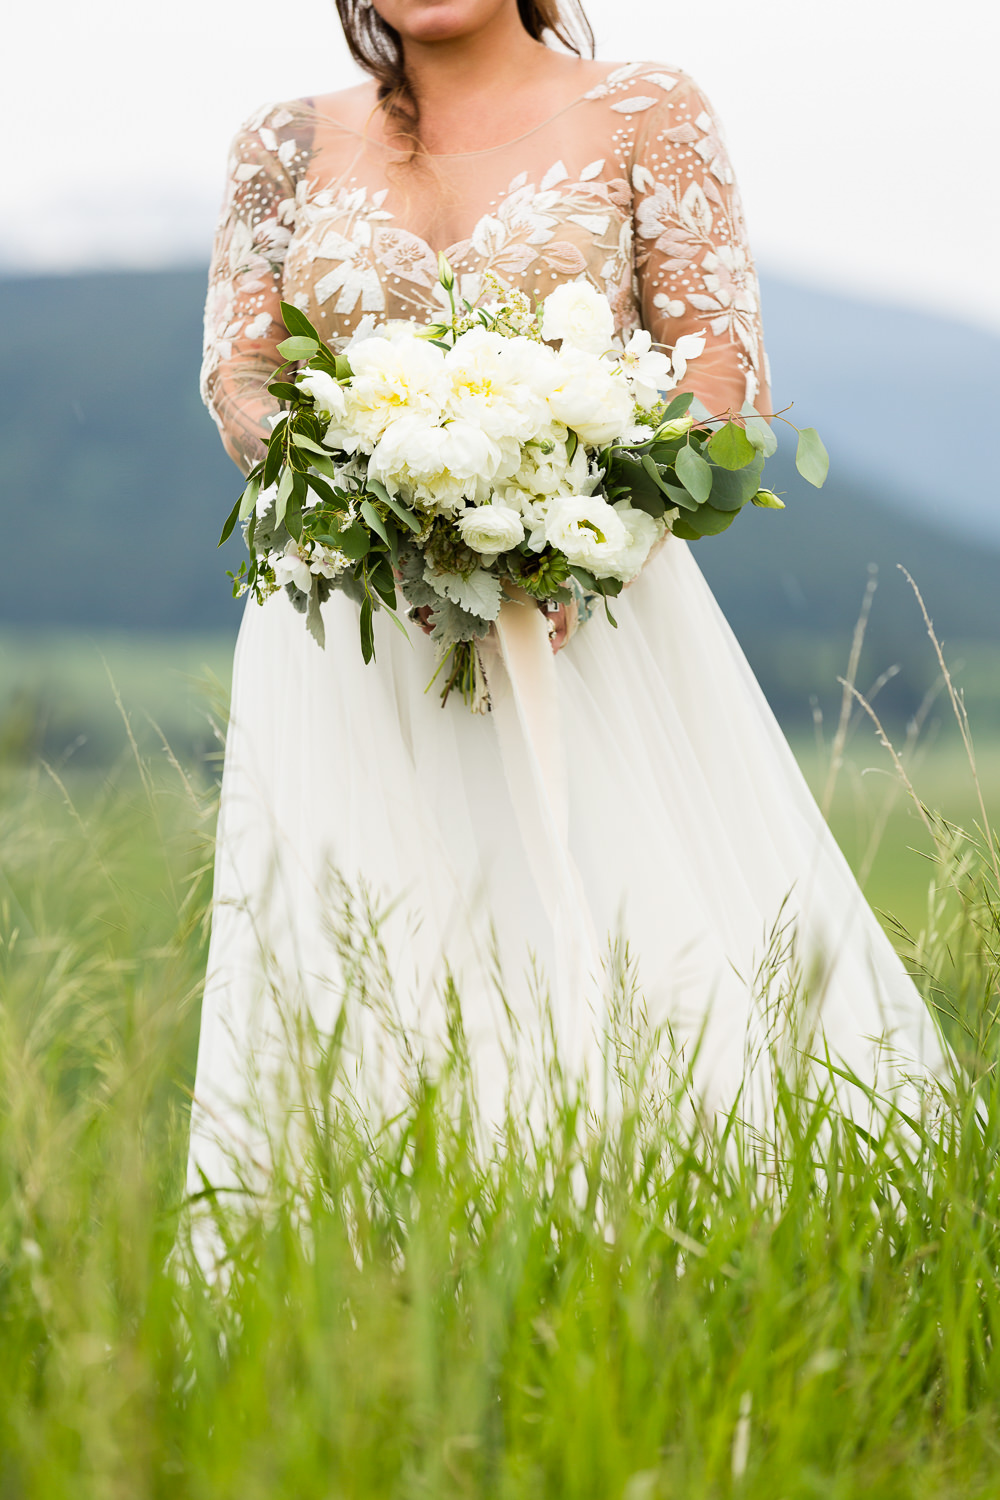 bozeman-hart-ranch-wedding-brides-bouquet.jpg